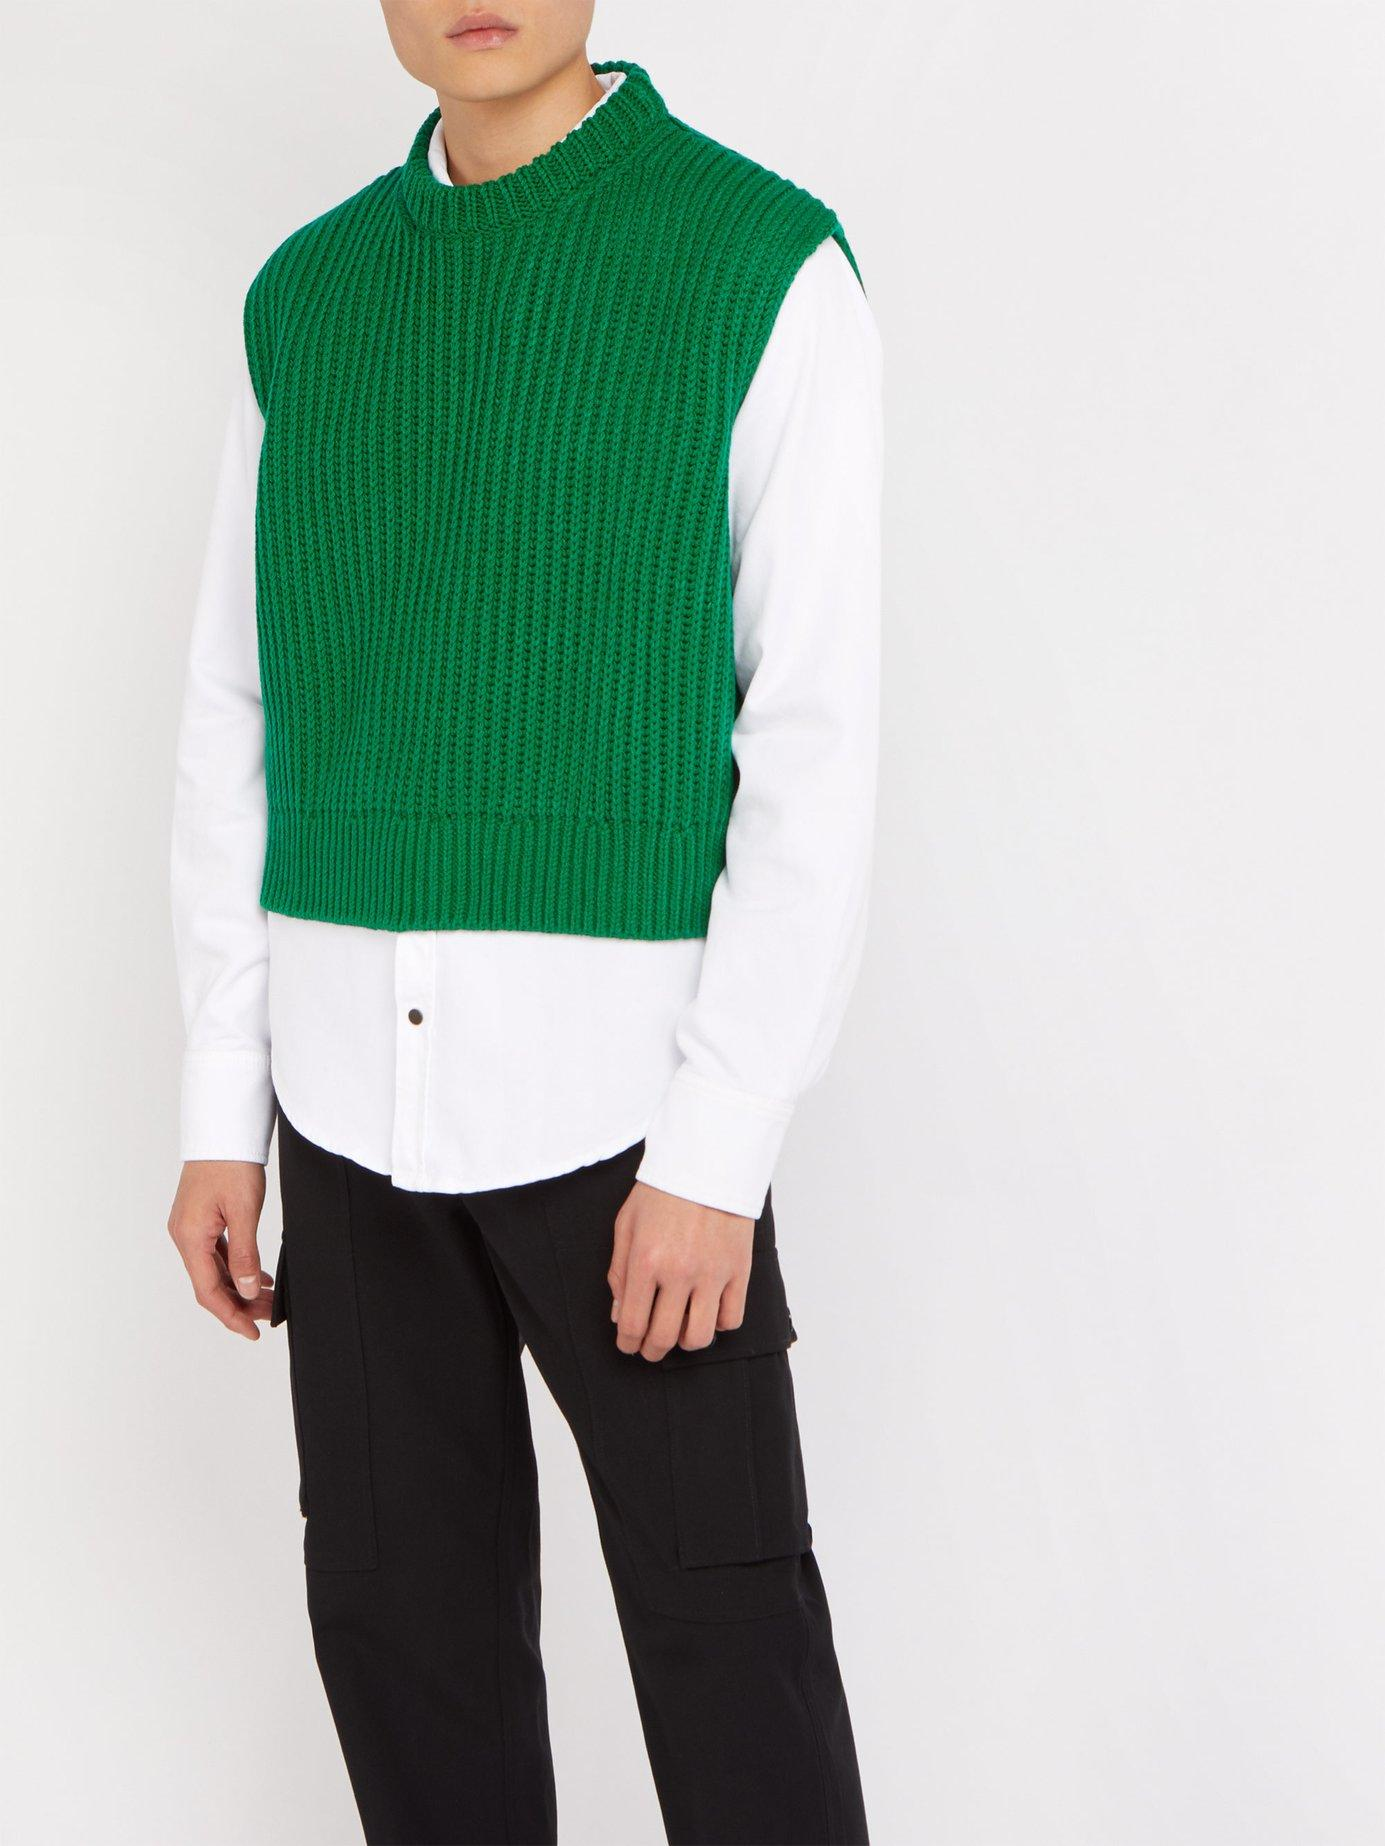 ec07196114f07 Lyst - CALVIN KLEIN 205W39NYC Cropped Ribbed Knit Sleeveless Sweater in  Green for Men